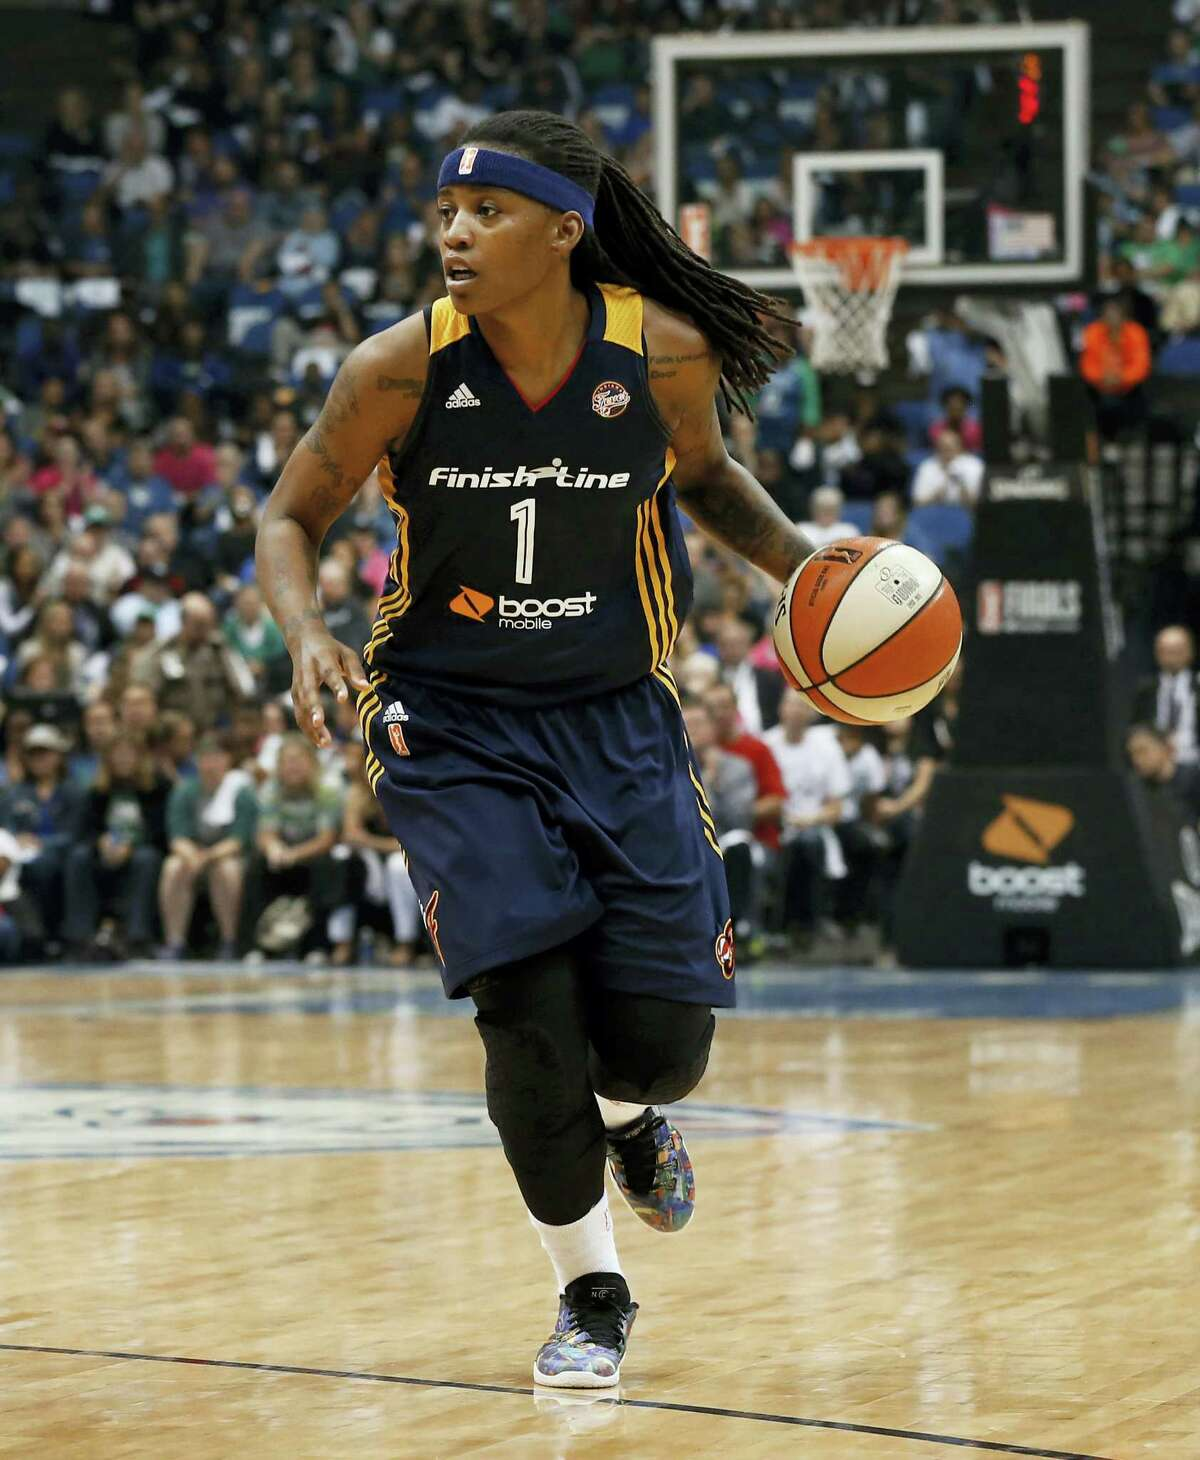 Shavonte Zellous has spent her last eight winters in Istanbul playing. She's loved the culture she's experienced in Turkey and it has been a second home to her. But she is weighing if it is worth risking her safety.